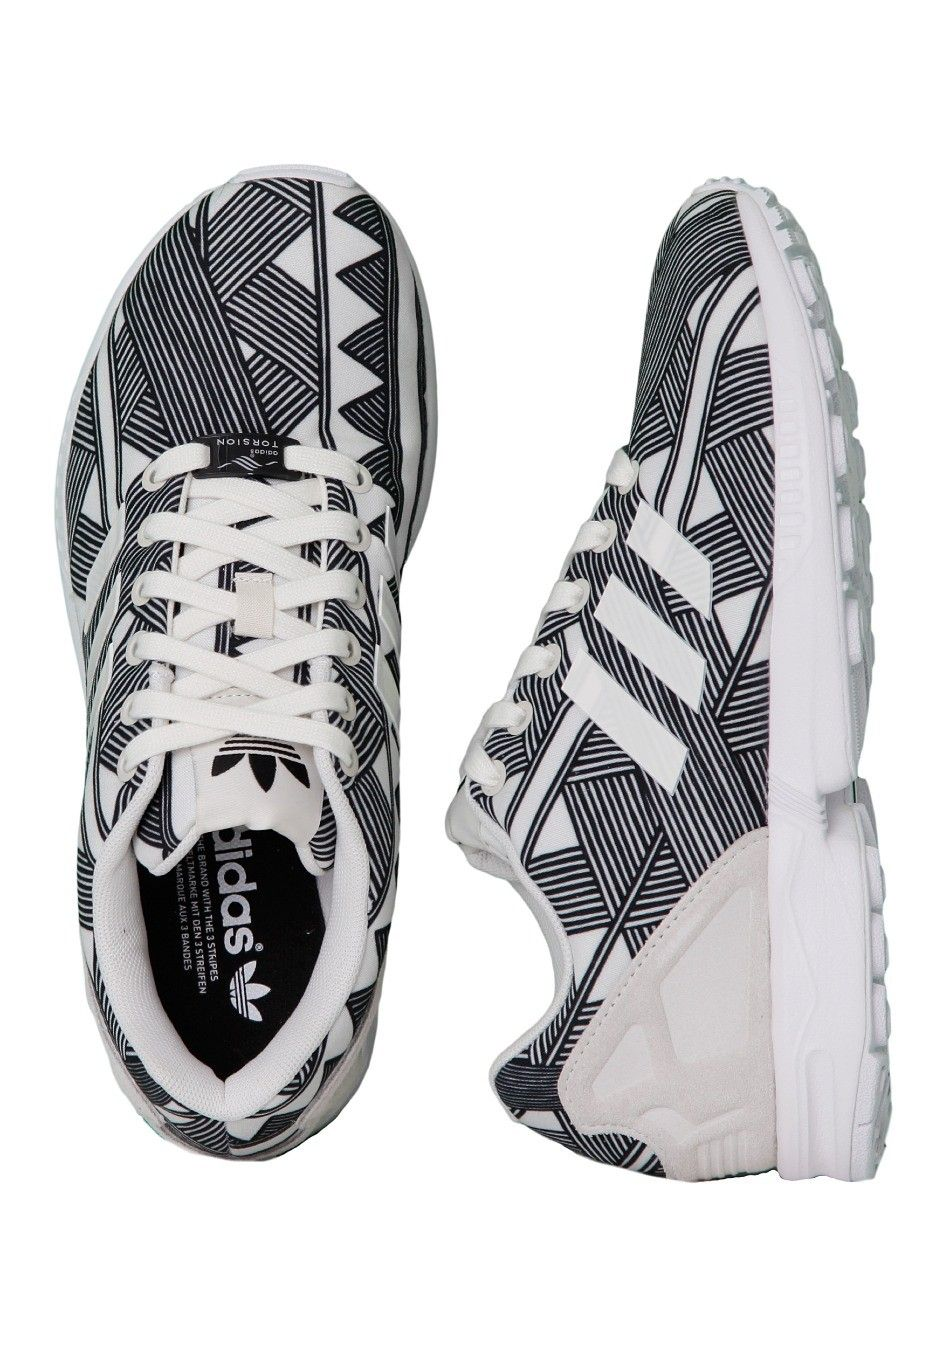 Off Adidas Zx Flux Whitegraphic Official Shop Merchandise Online wvmN0O8n